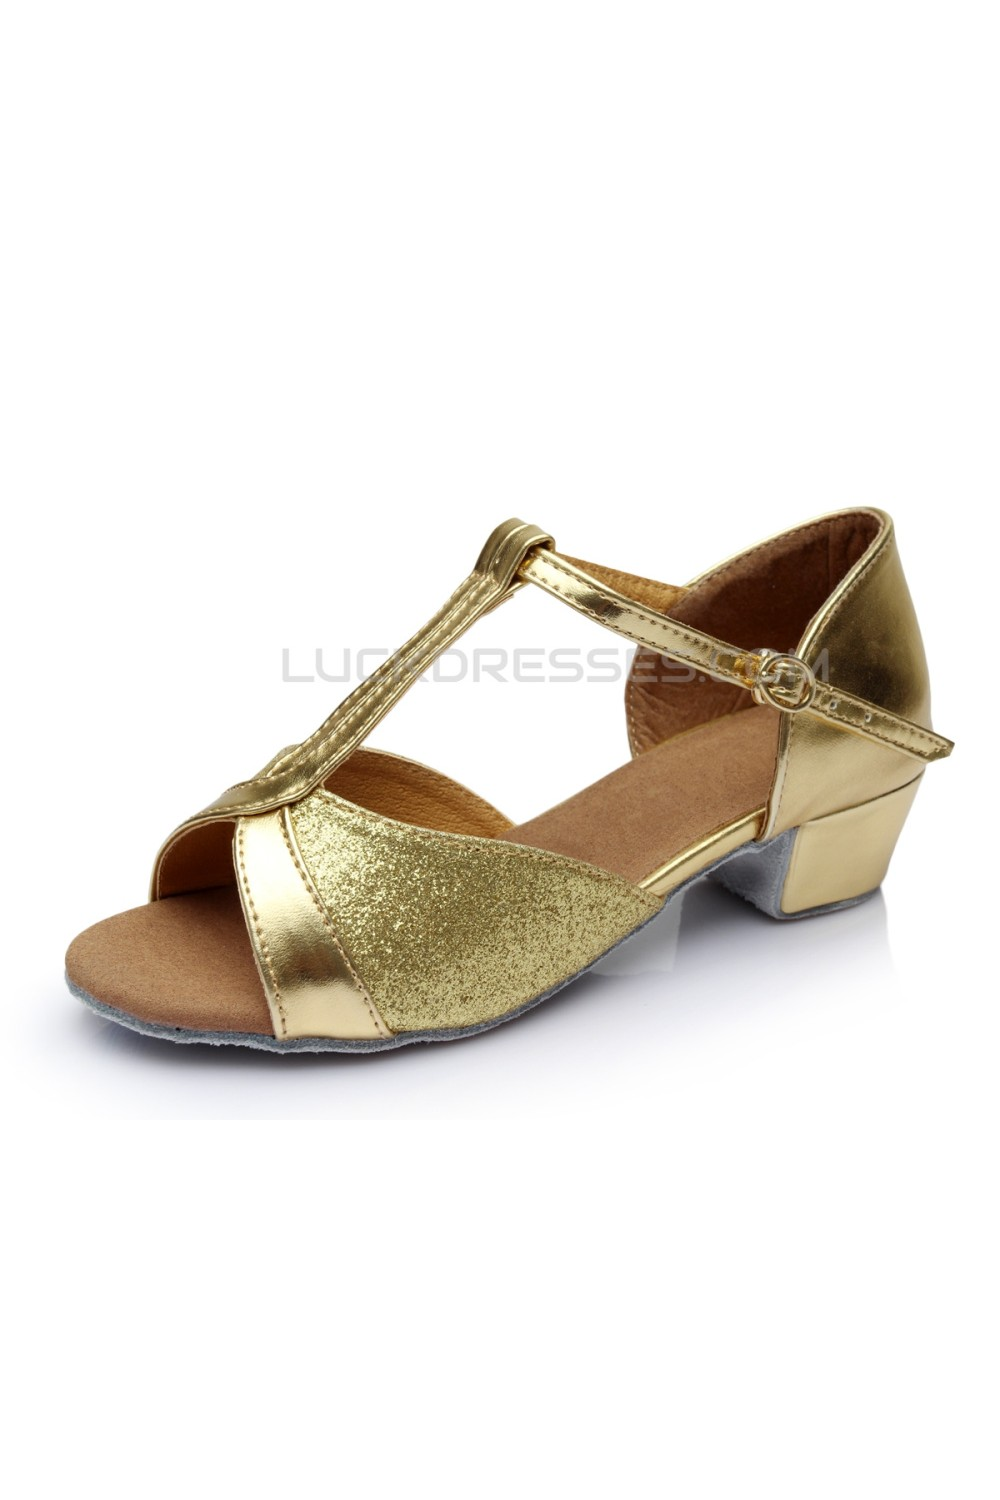 7490d96e6173 Women s Kids  Gold Sparkling Glitter Flats Latin T-Strap Dance Shoes Chunky  Heels Wedding Party Shoes D601032